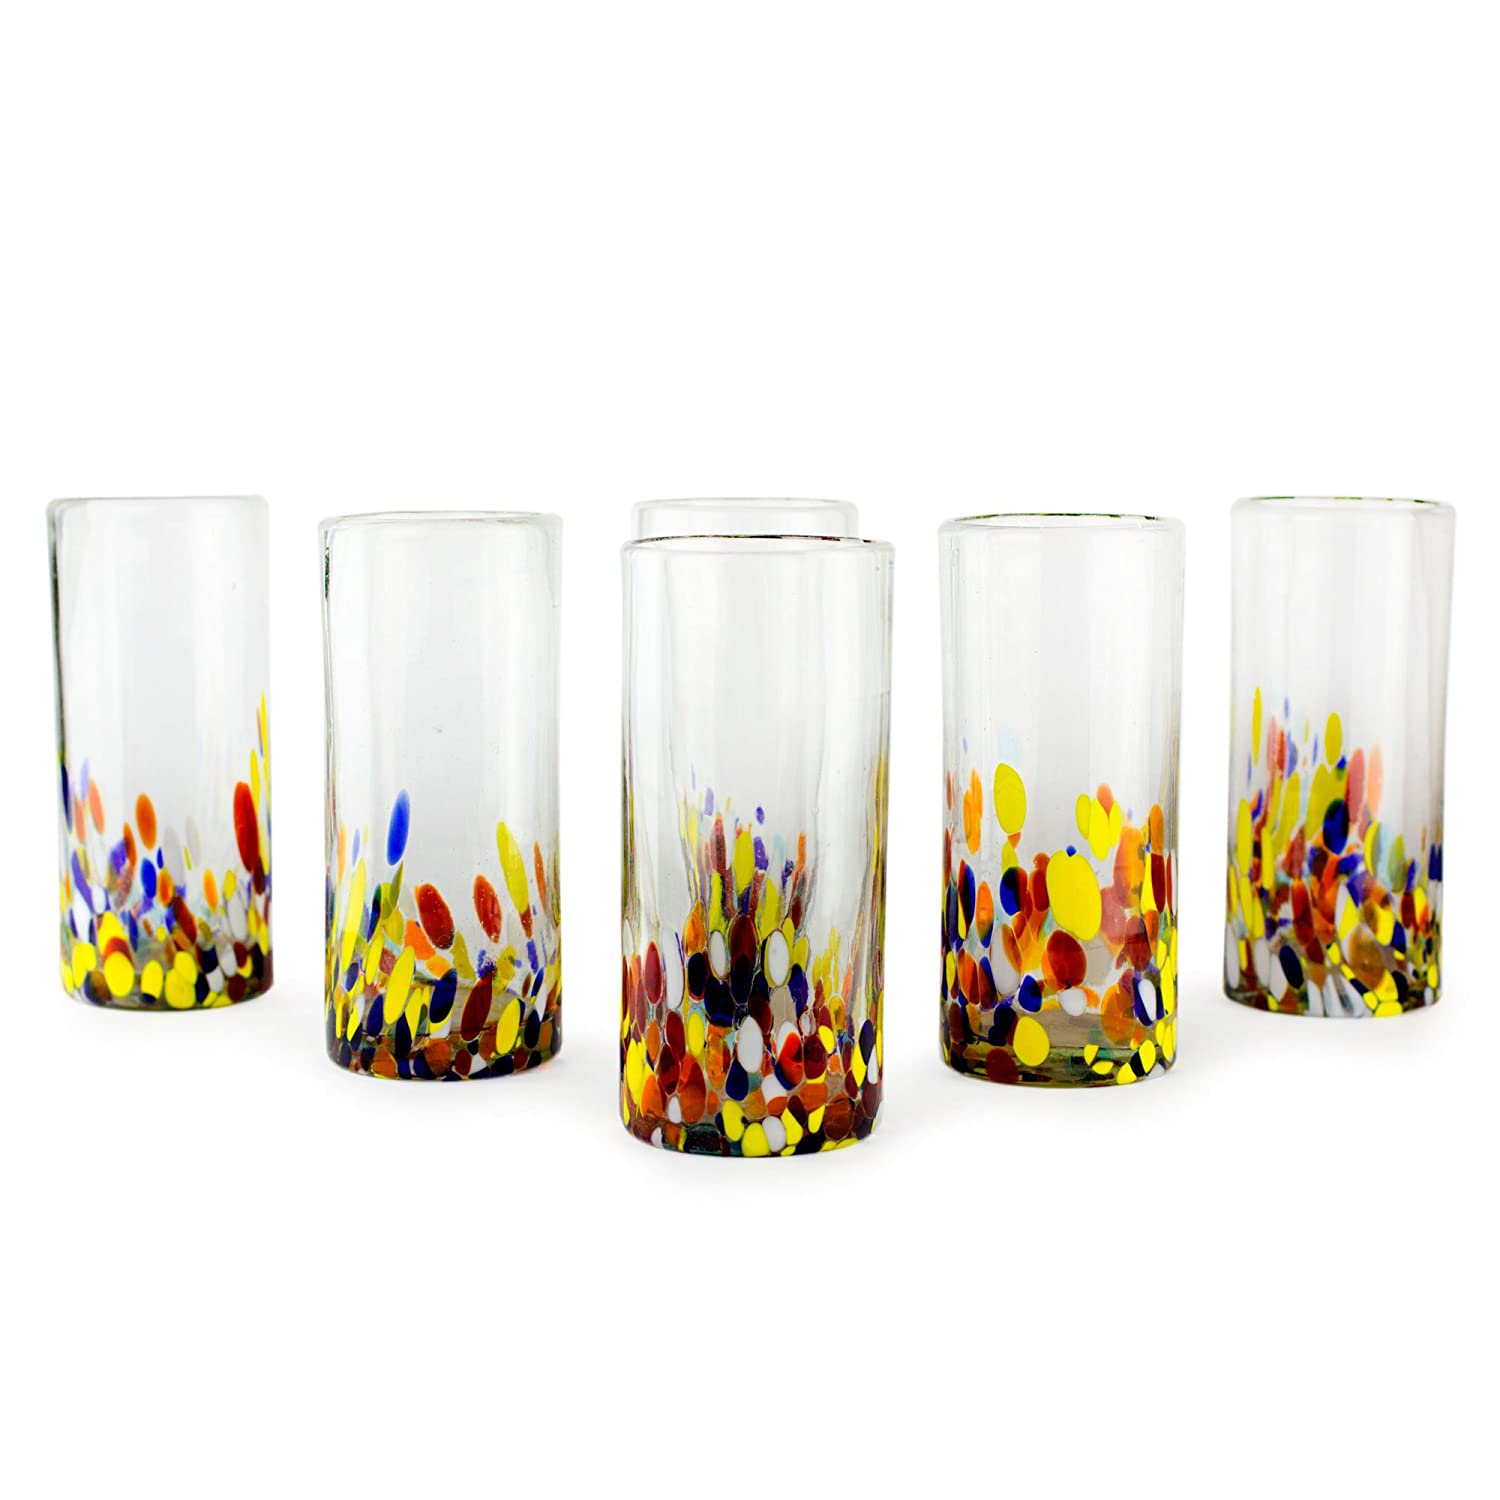 NOVICA Hand Blown Multicolor Recycled Glass Cocktail Glasses, 19 oz 'Confetti' (set of 6) 77553